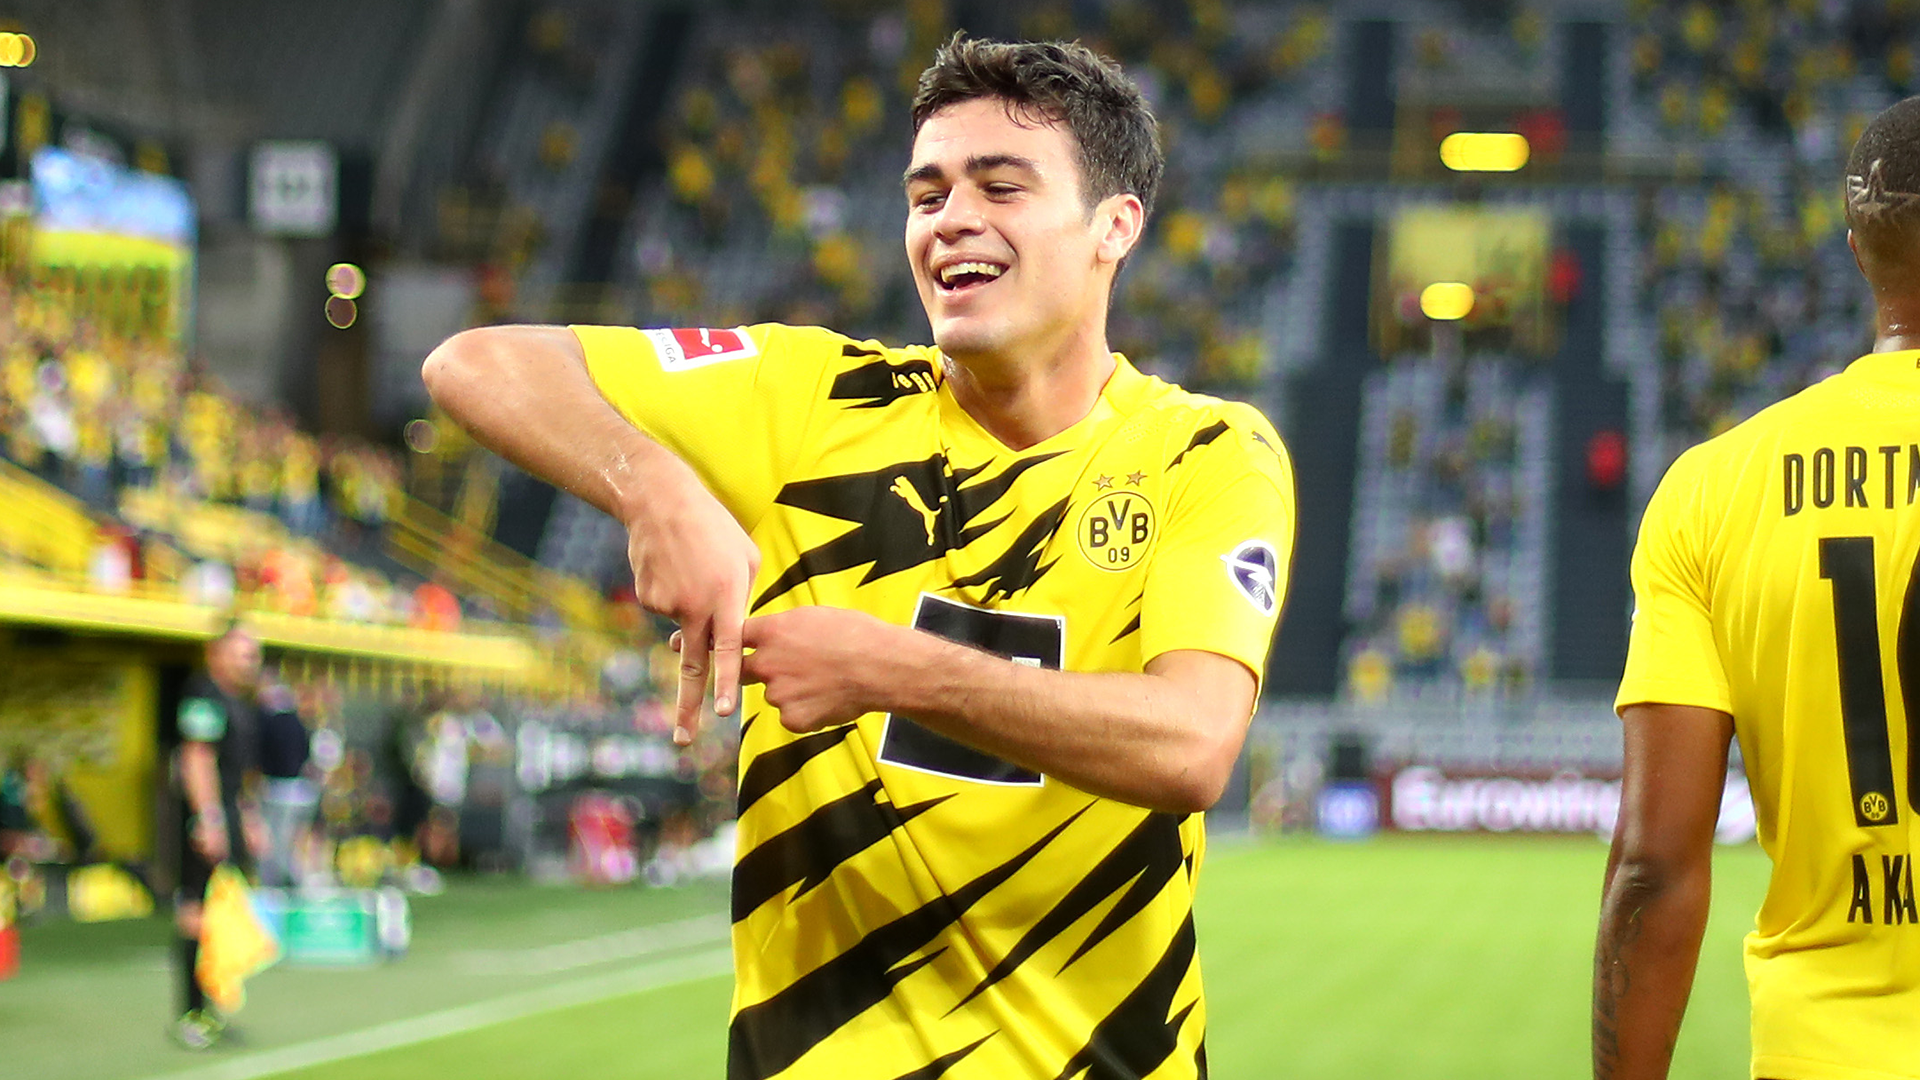 Reyna signs new Borussia Dortmund deal that will keep USMNT starlet in Germany until 2025